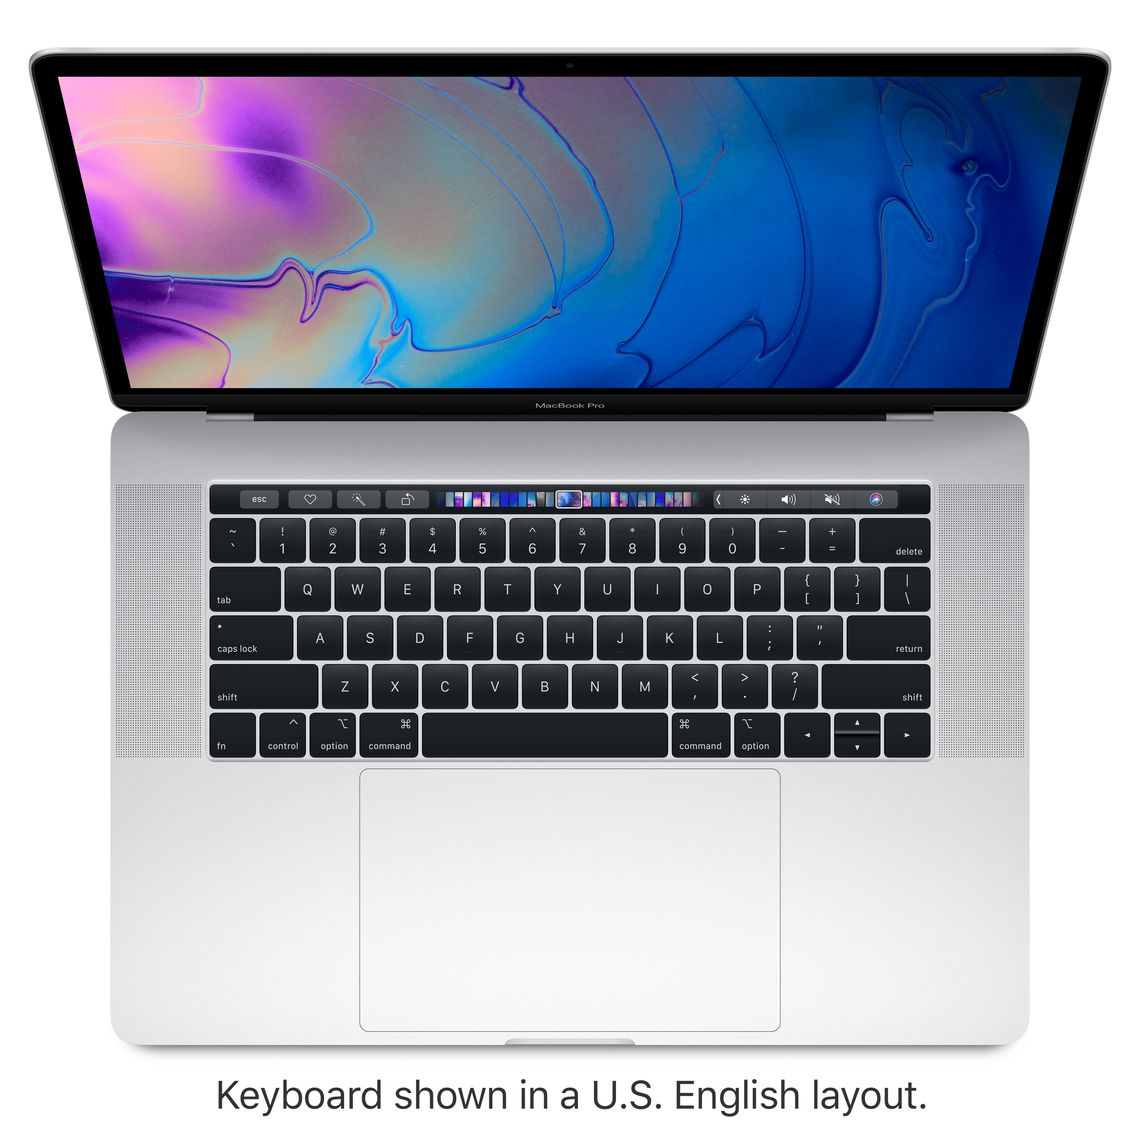 Refurbished 15.4 inch MacBook Pro 2.9GHz 6 core Intel Core i9 with Retina display Silver